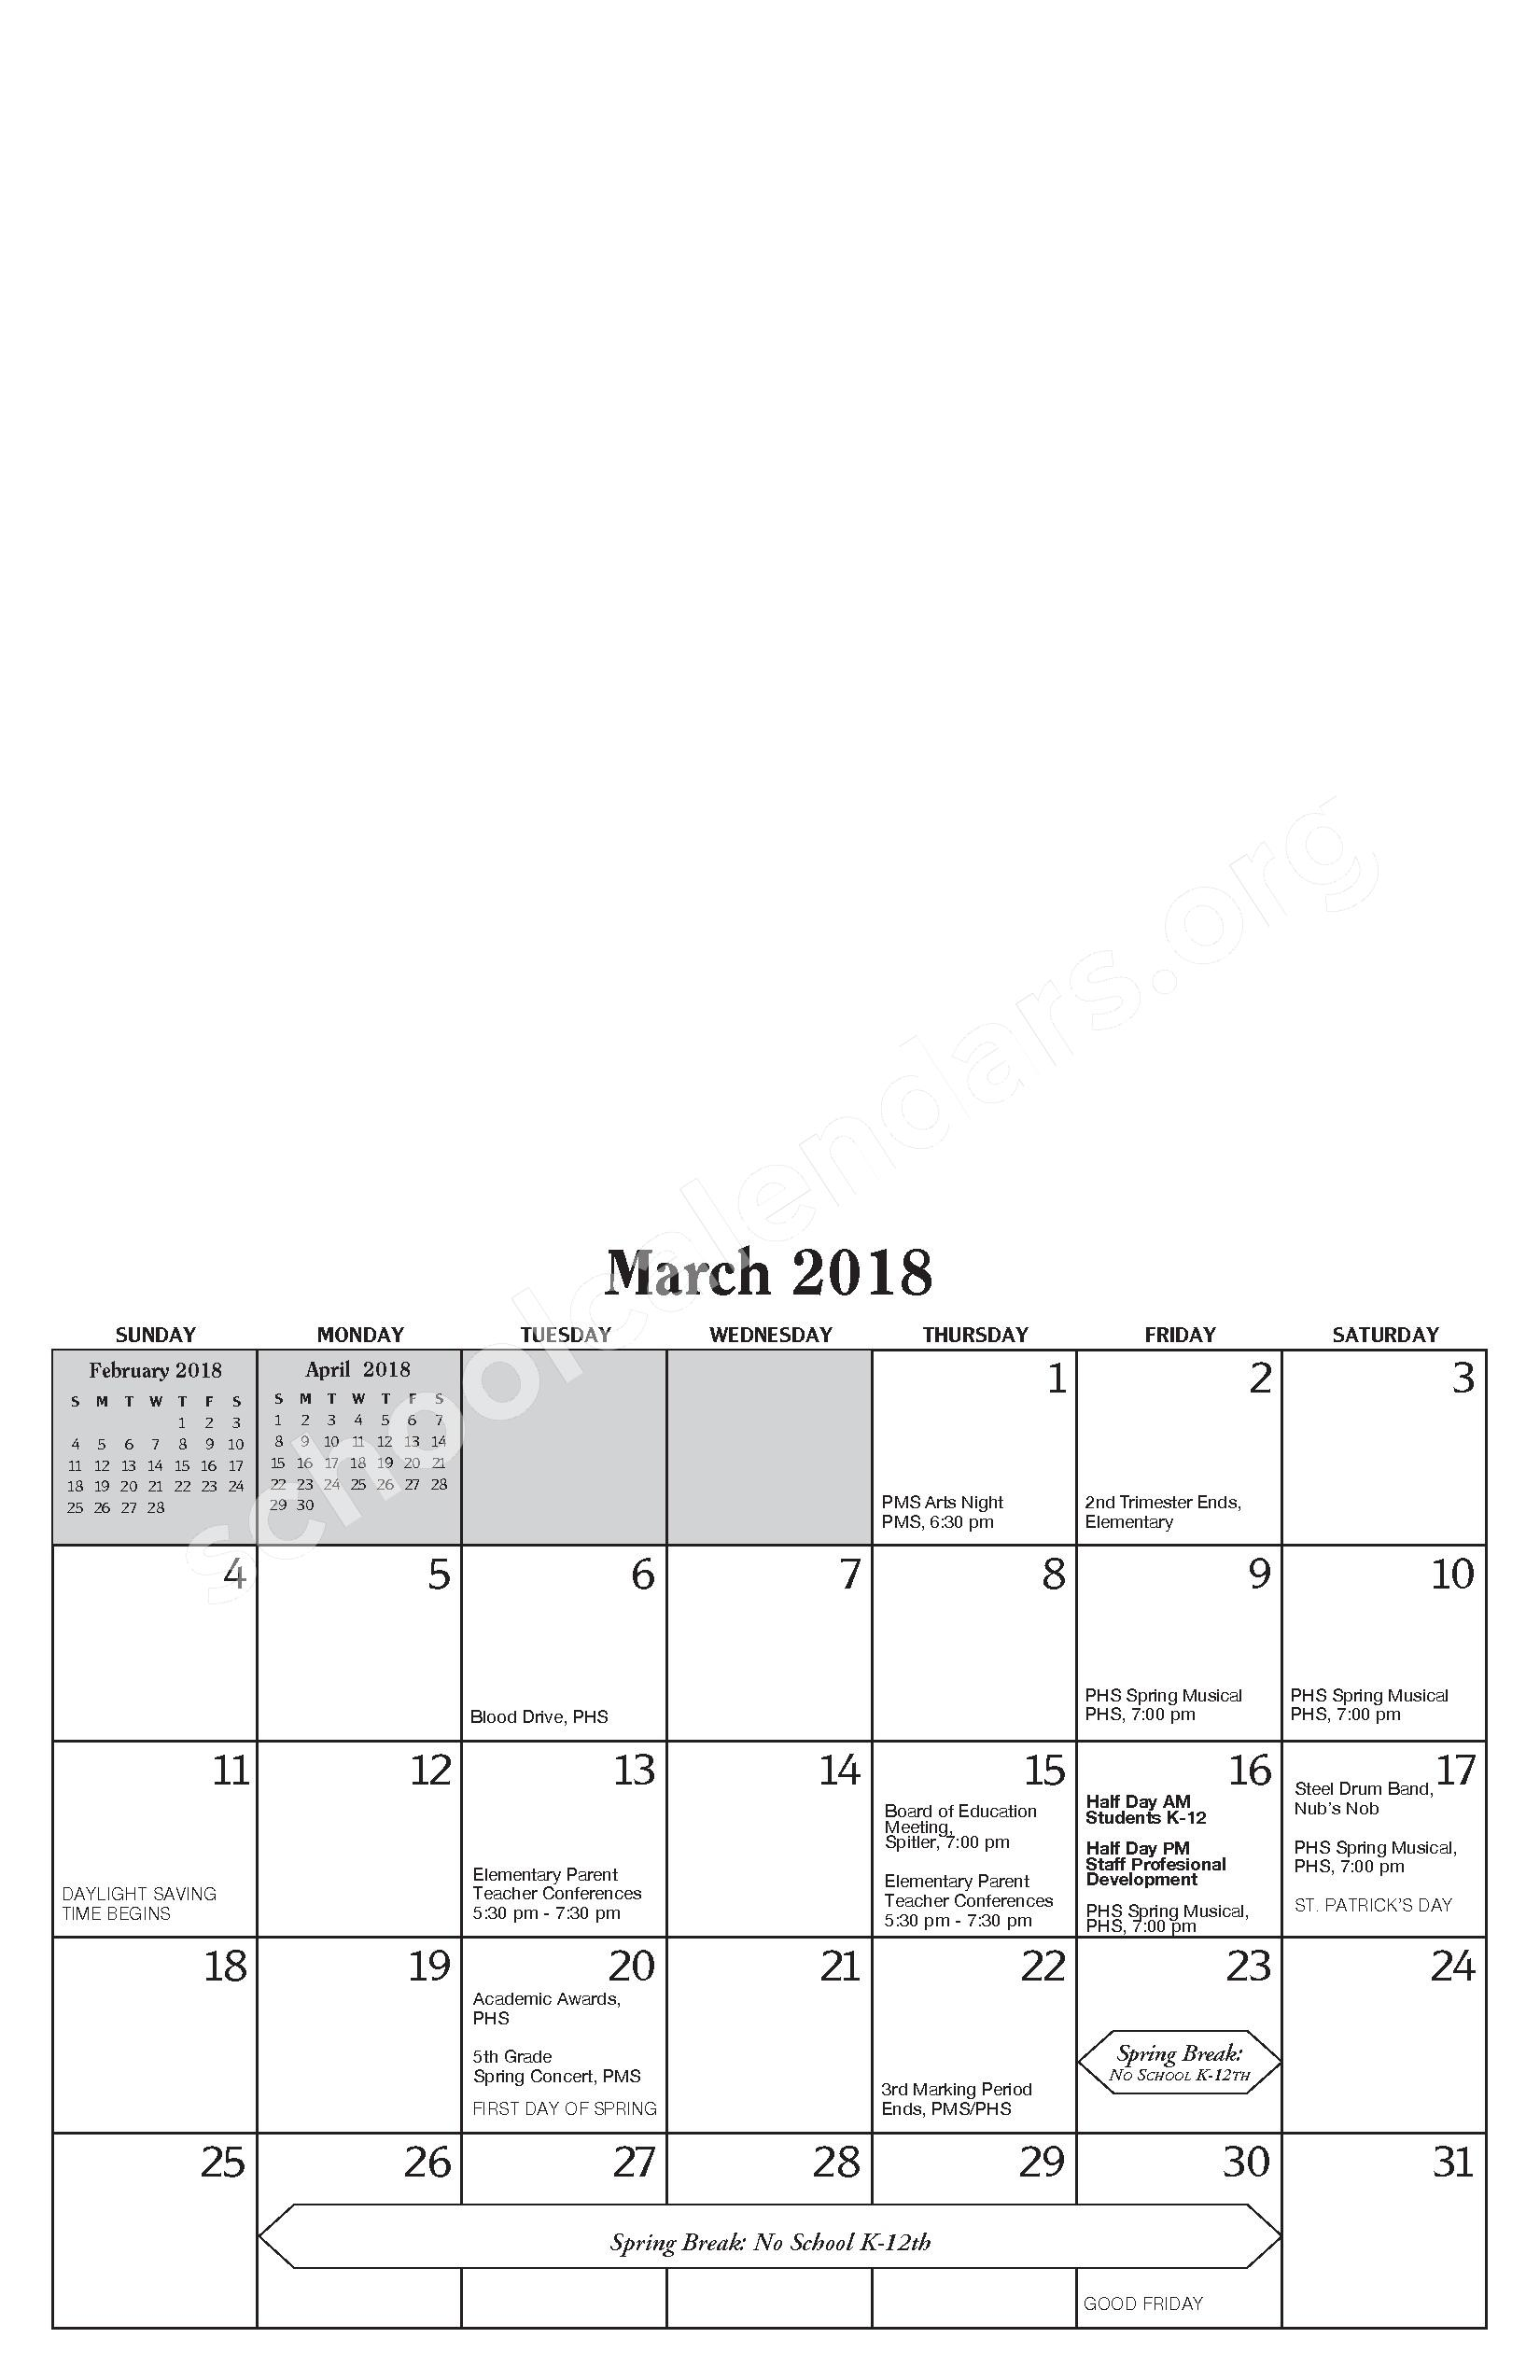 Annual Report & Calendar – Public Schools of Petoskey – page 17